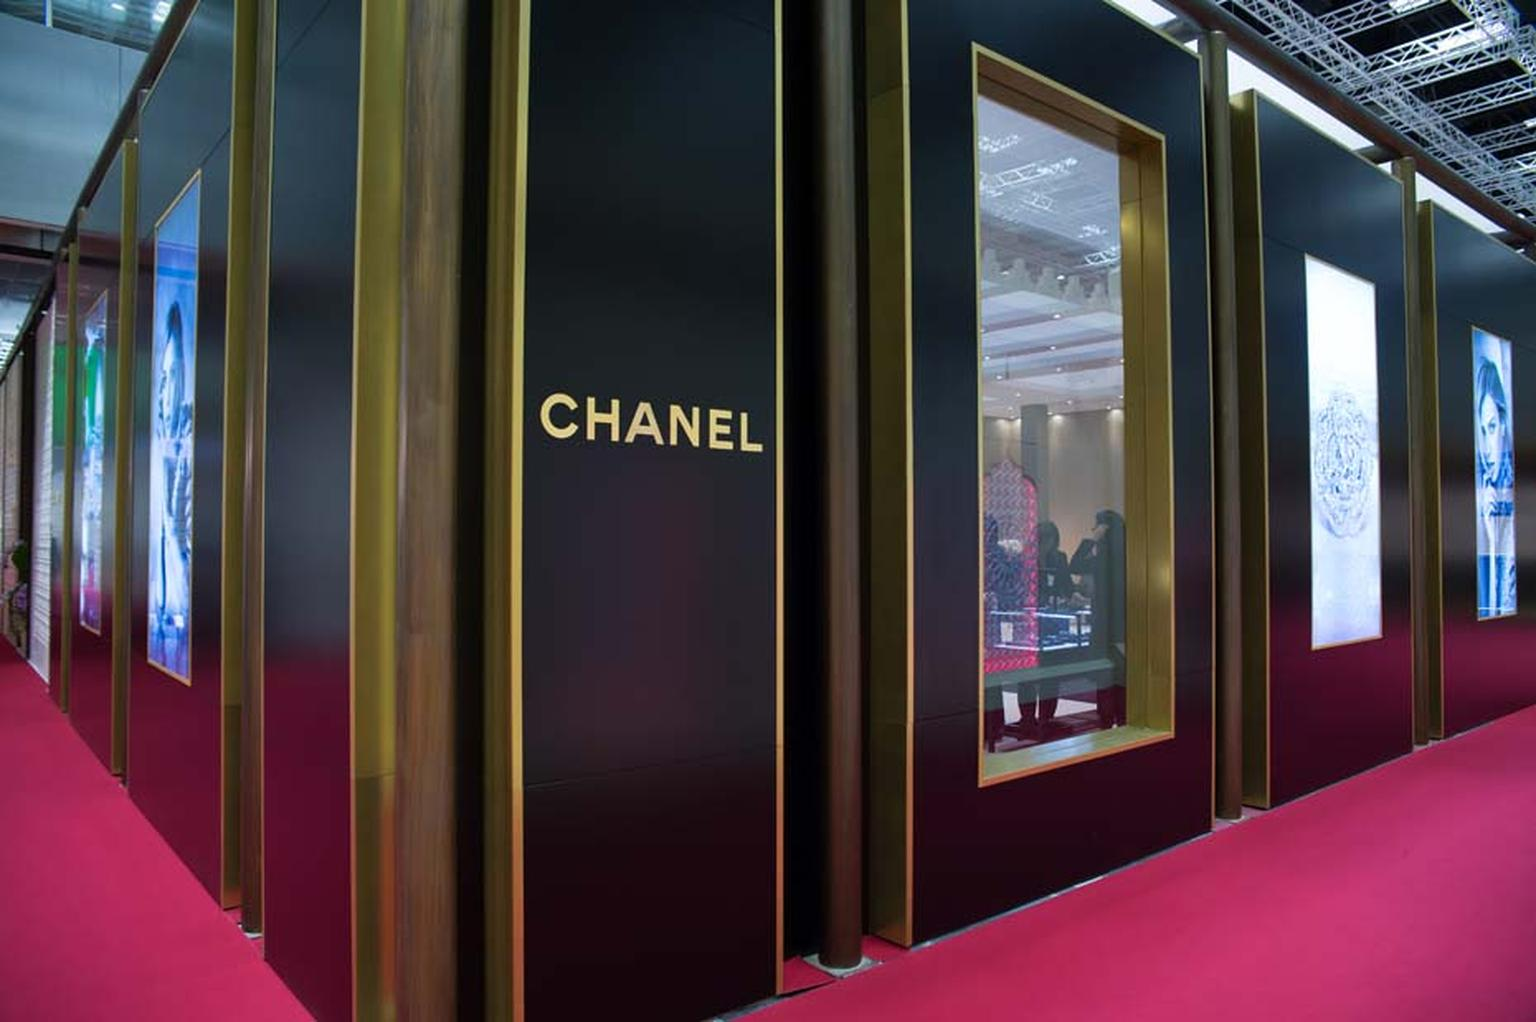 Among the internationally renowned brands that will be exhibiting at the DJWE in Doha is Chanel.